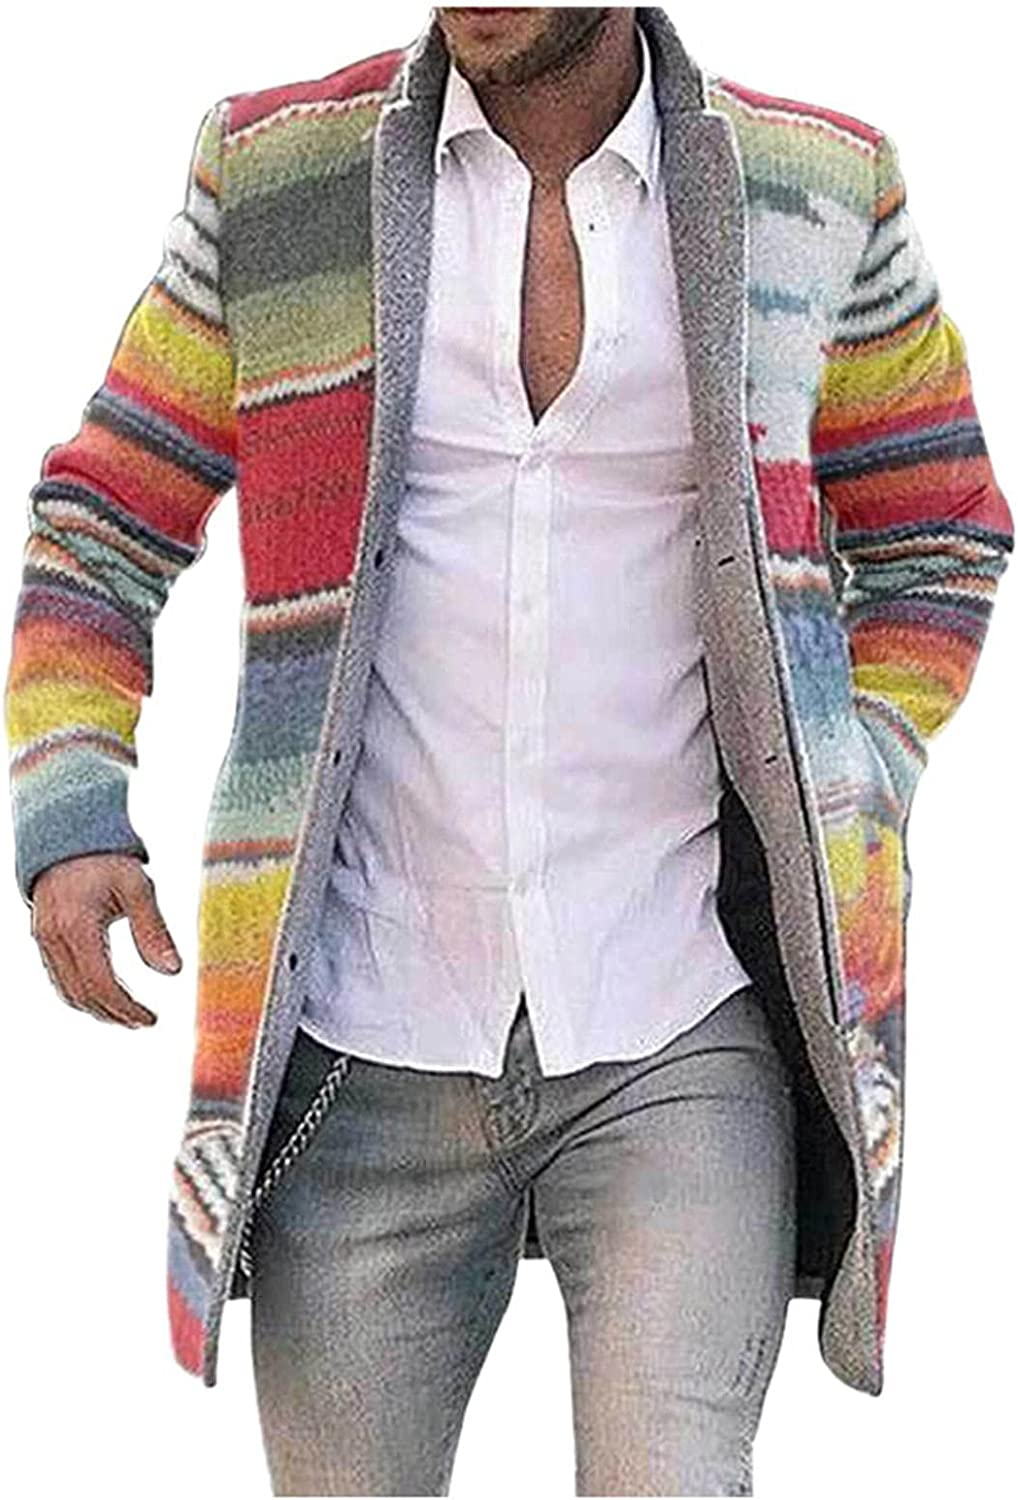 Burband Mens Open Front Cardigans Shawl Lapel Trench Coats Long Pullover Jackets Lightweight Windbreaker Big and Tall S-5XL